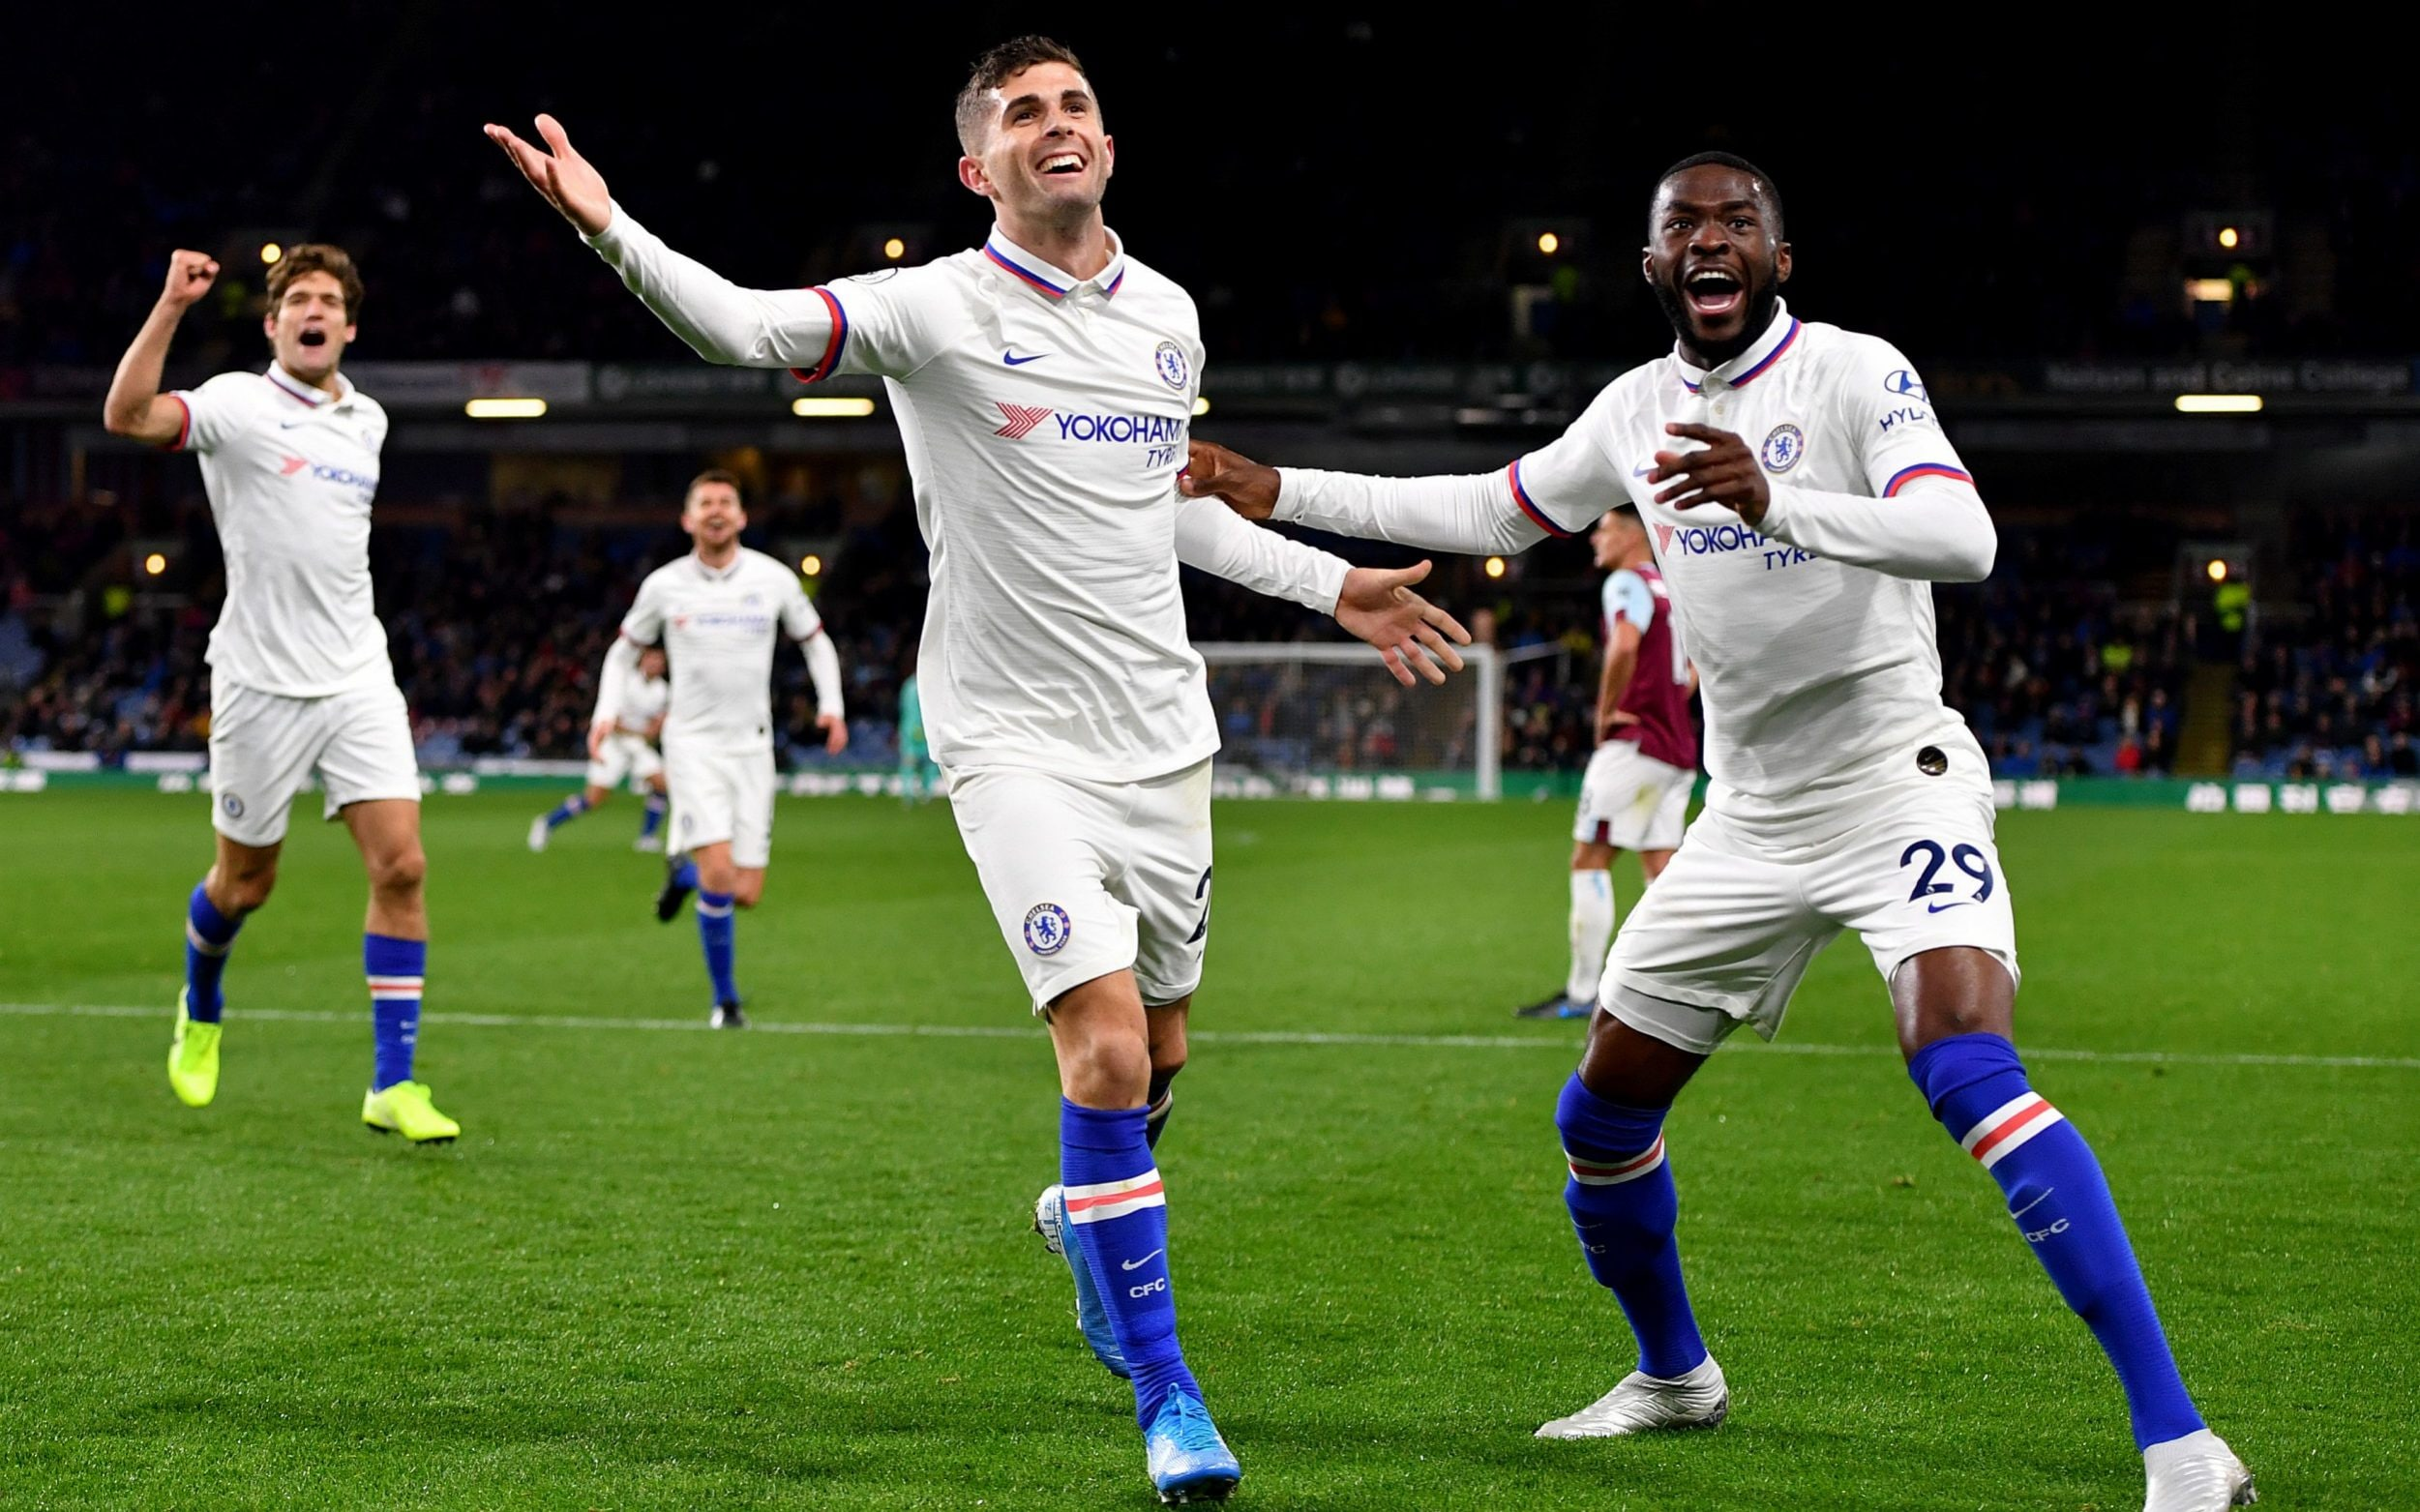 Burnley 2-4 Chelsea, Pulisic first ever career hat-trick, more about the game